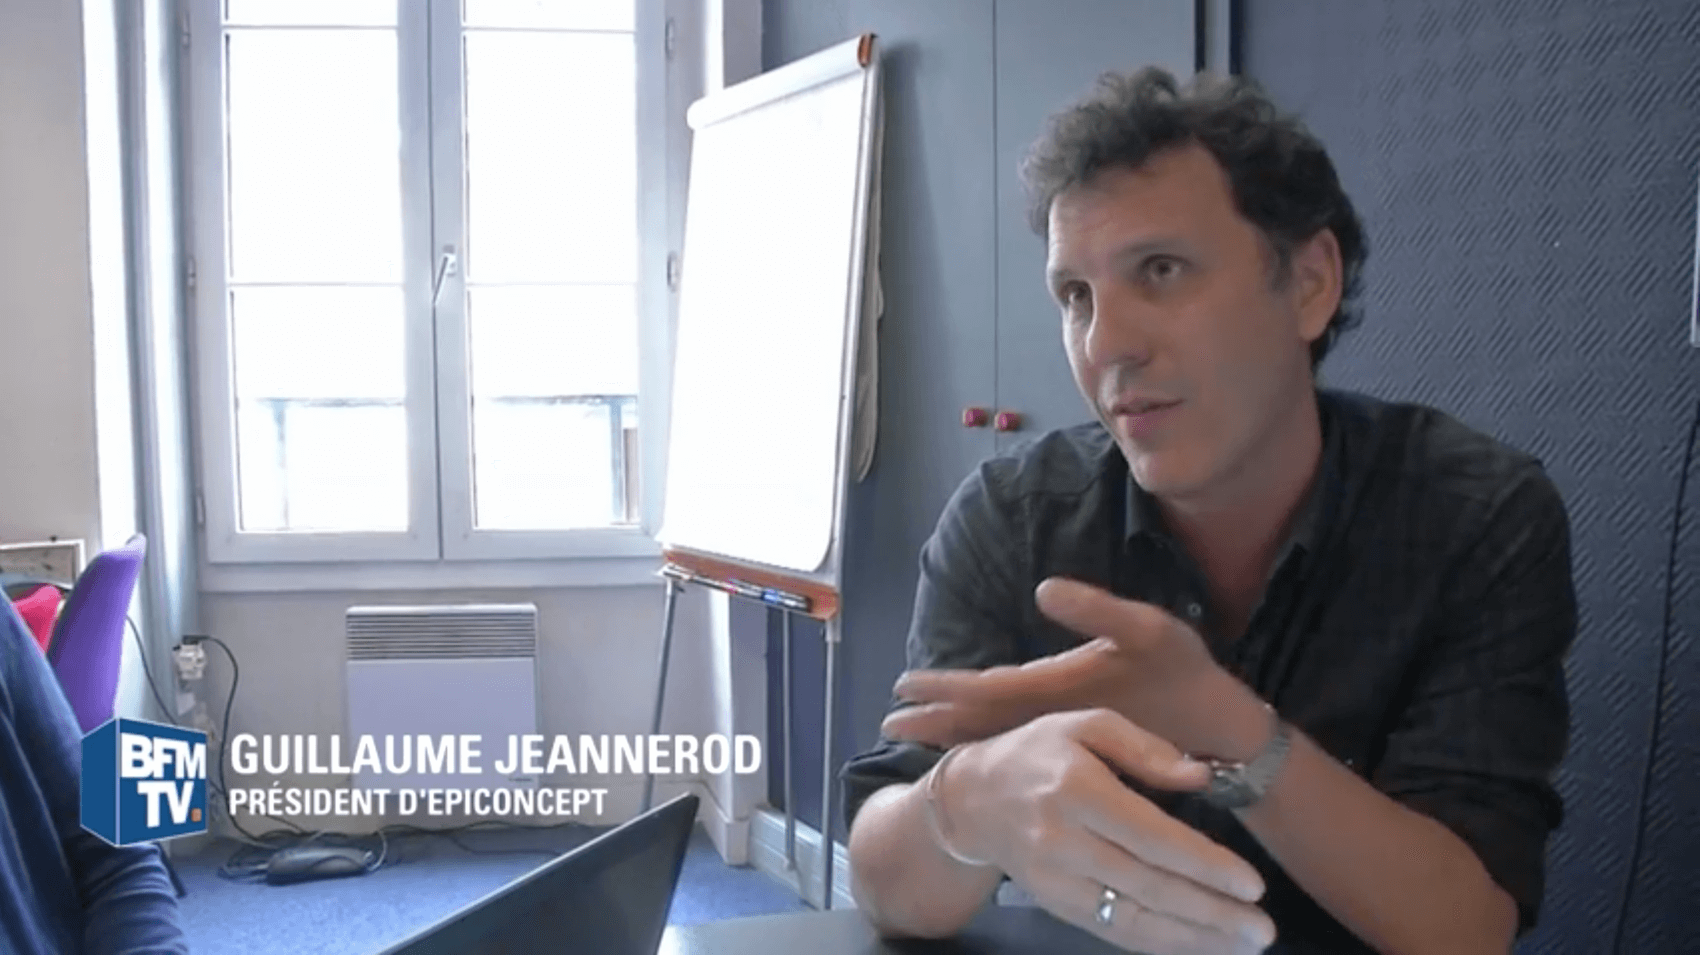 Guillaume Jeannerod